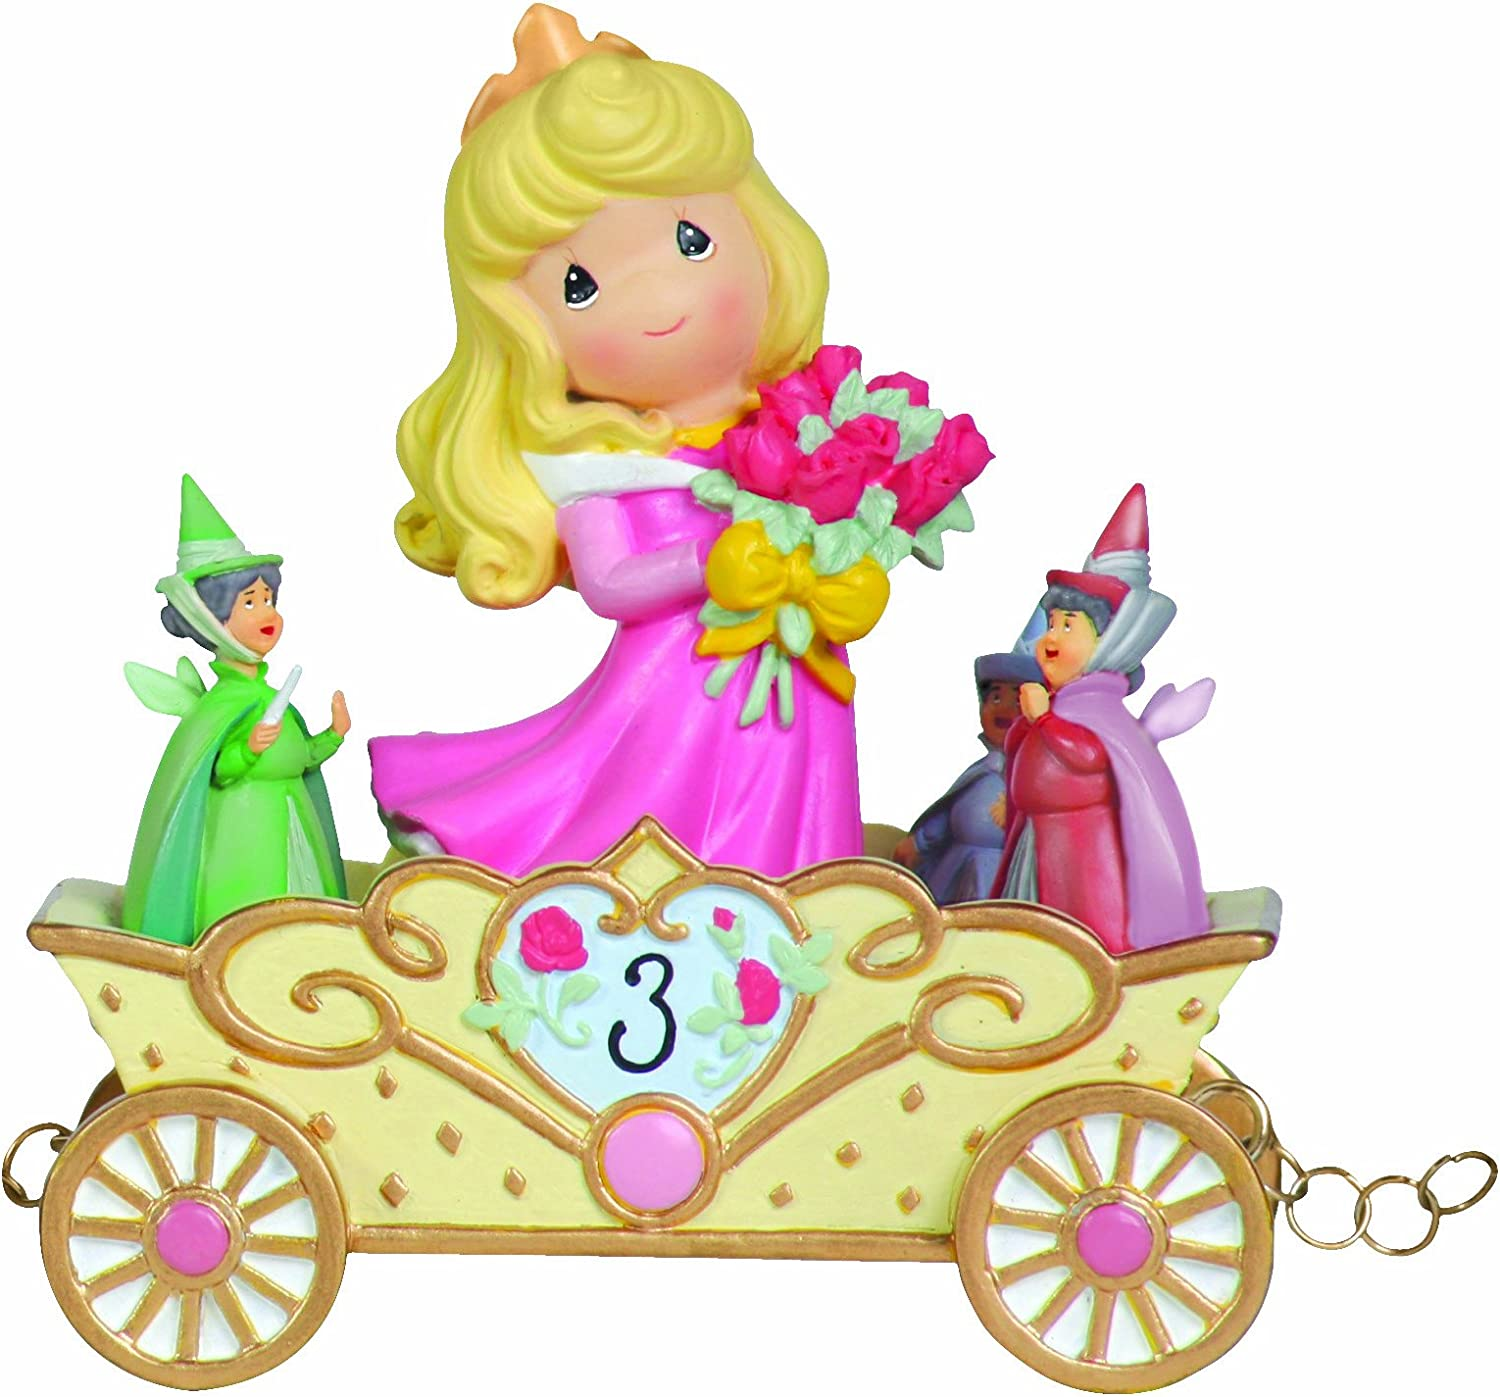 Precious Moments, Disney Showcase Collection,Now You're Three, A Beauty You'll Always And Forever Be, Disney Birthday Parade, Age 3, Resin Figurine, 104405